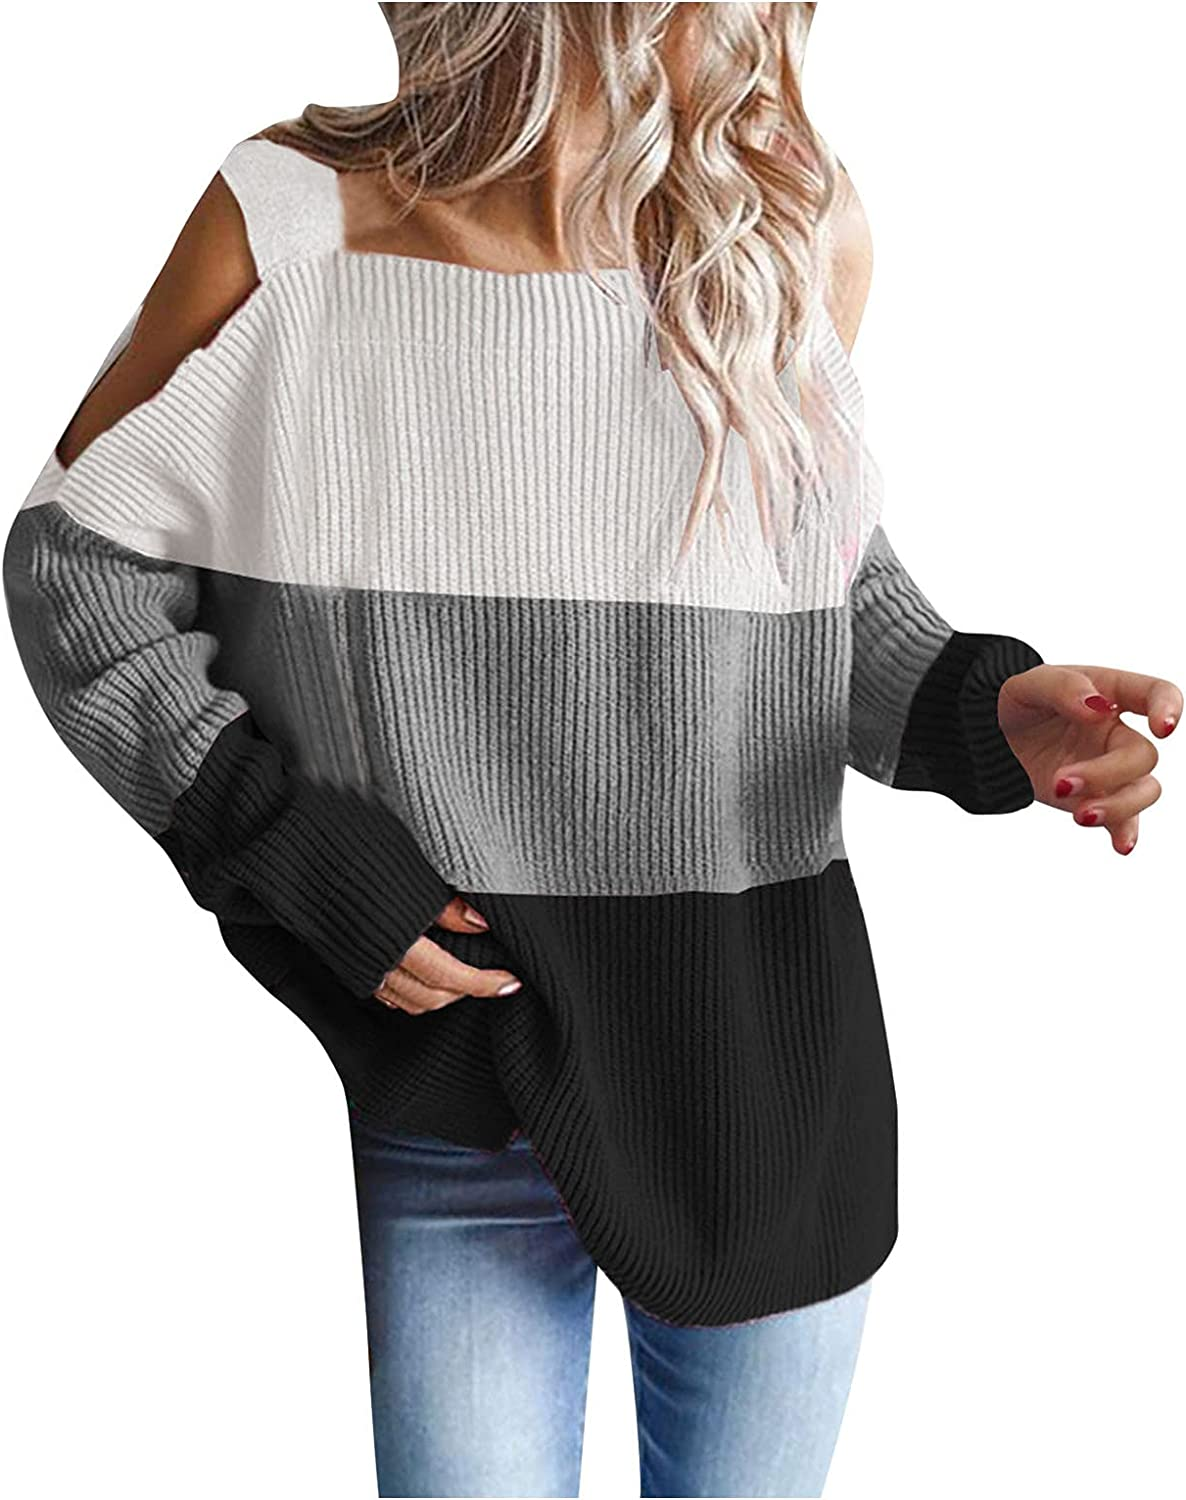 RUIY Fall Cold Shoulde Sweateres for Women, Oversized Sweaters Batwing Long Sleeve Chunky Knitted Winter Tunic Tops